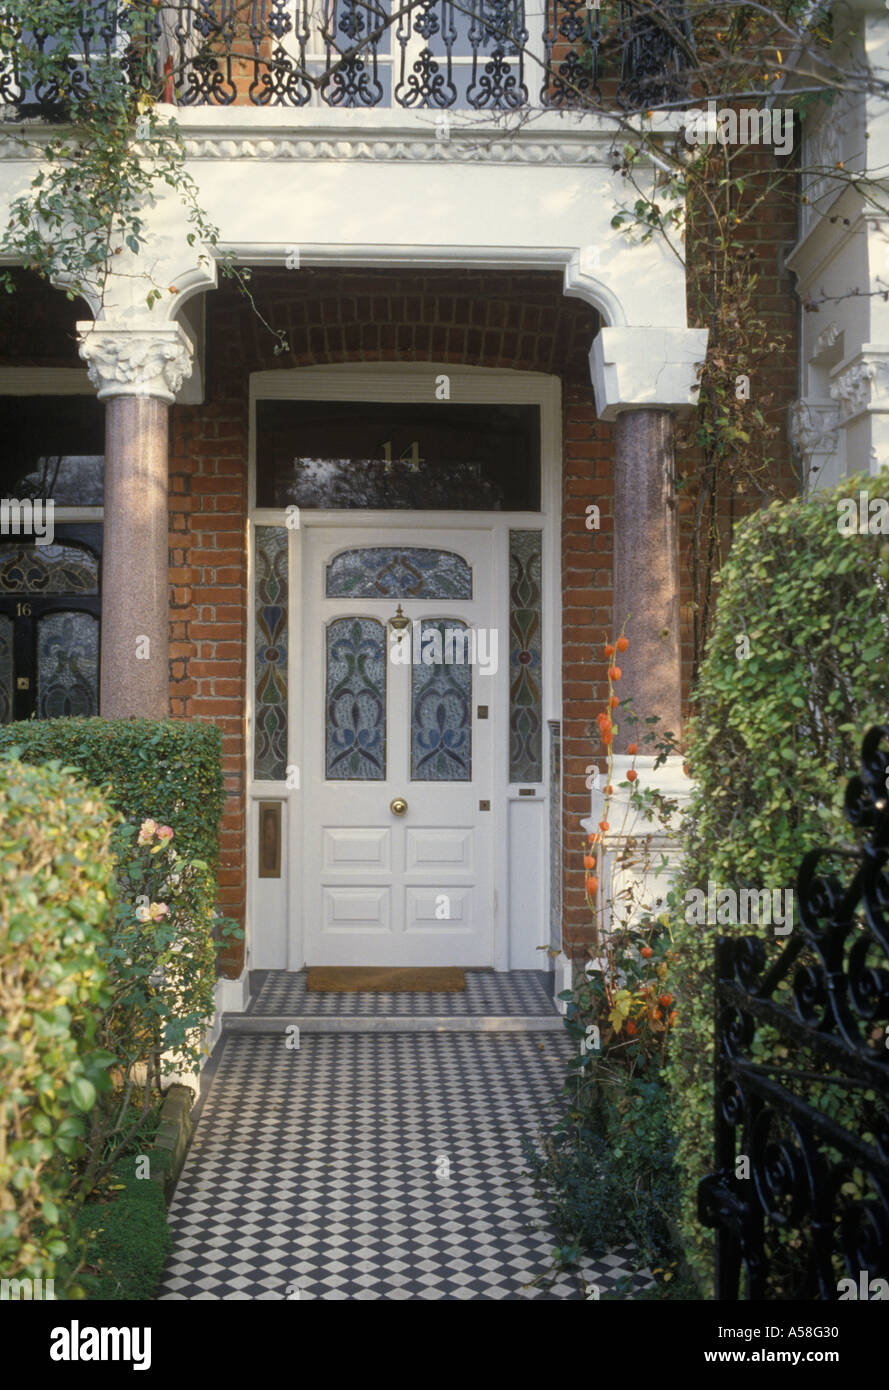 Fulham South West London Uk Typical Front Door Porch And Path Of